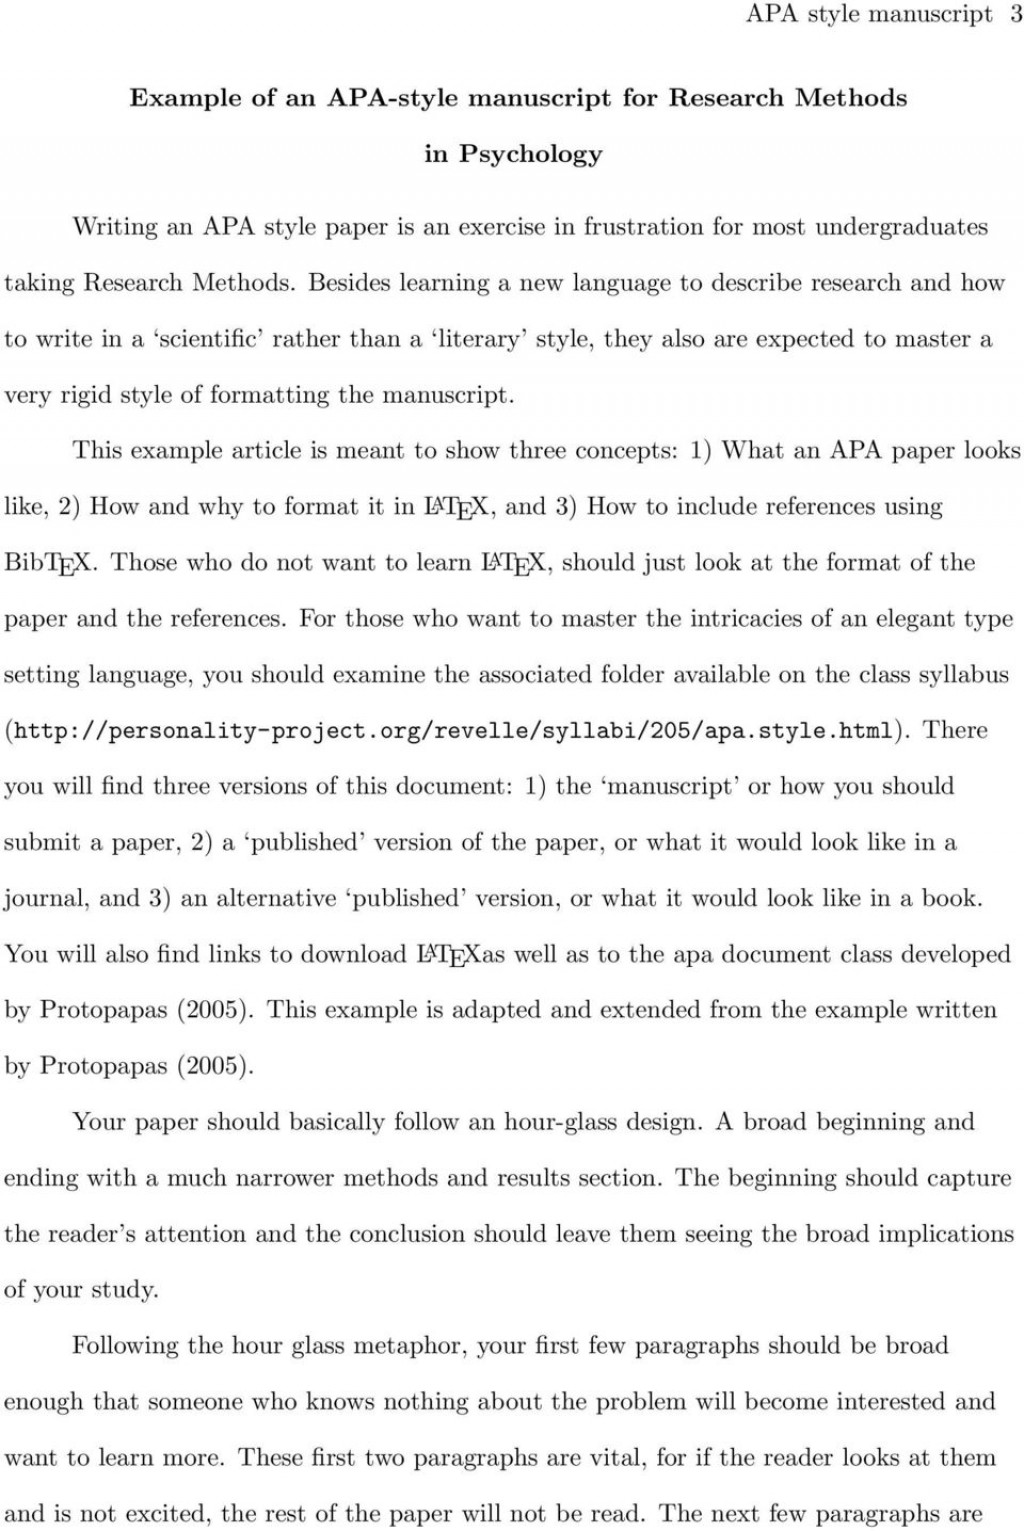 015 Methods Example For Research Paper Page 3 Breathtaking Writing Method Section Imrad Papers Large